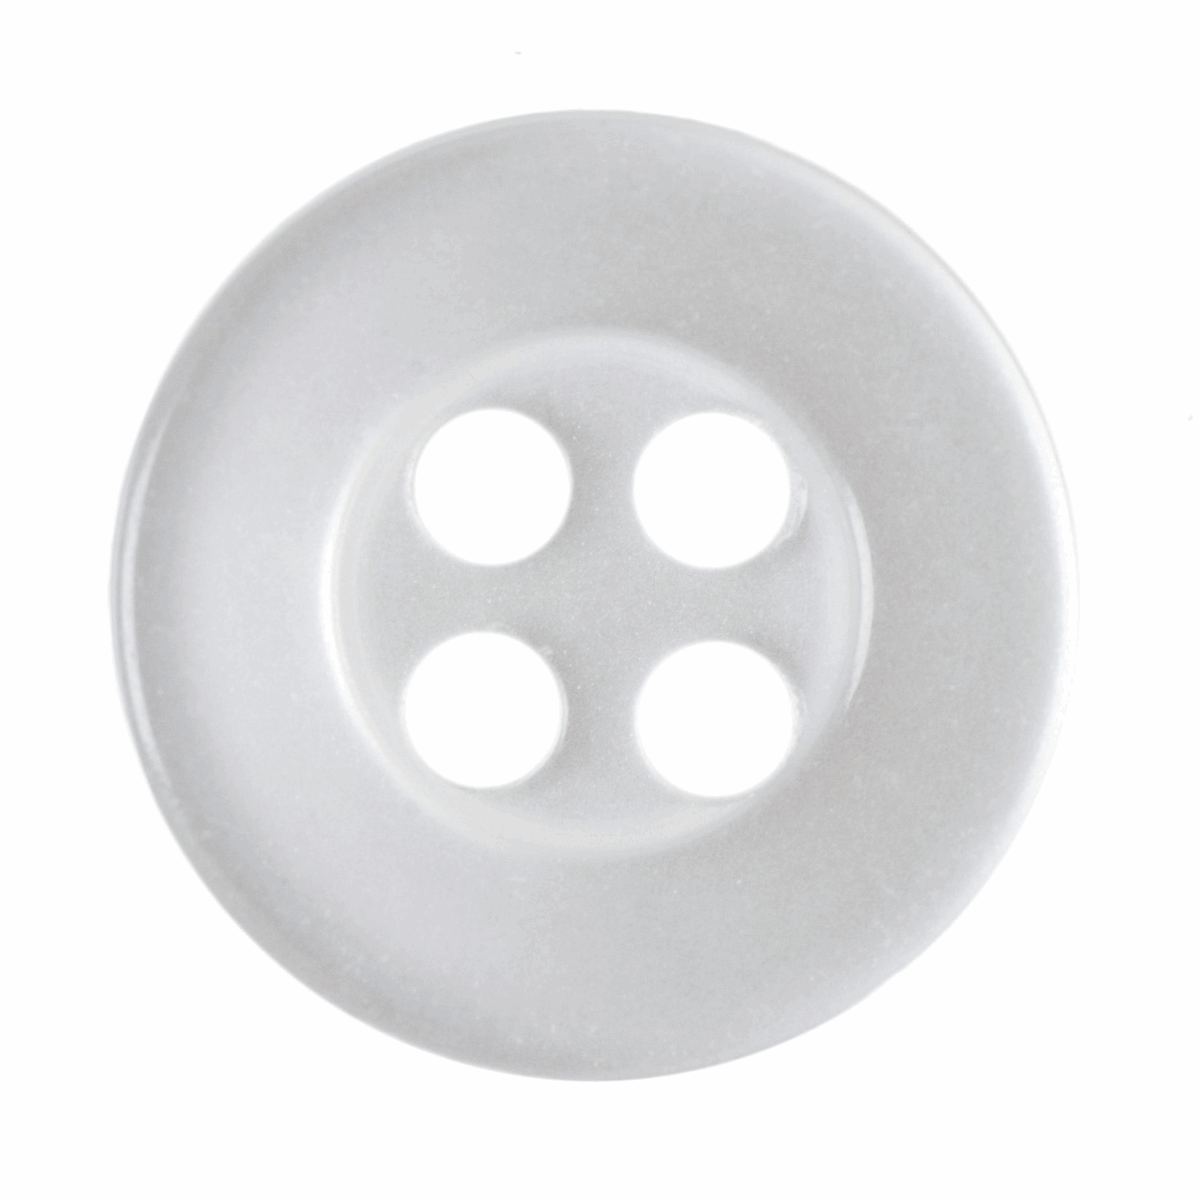 Picture of Hemline Button - Code A - Size: 10mm: Pack 13